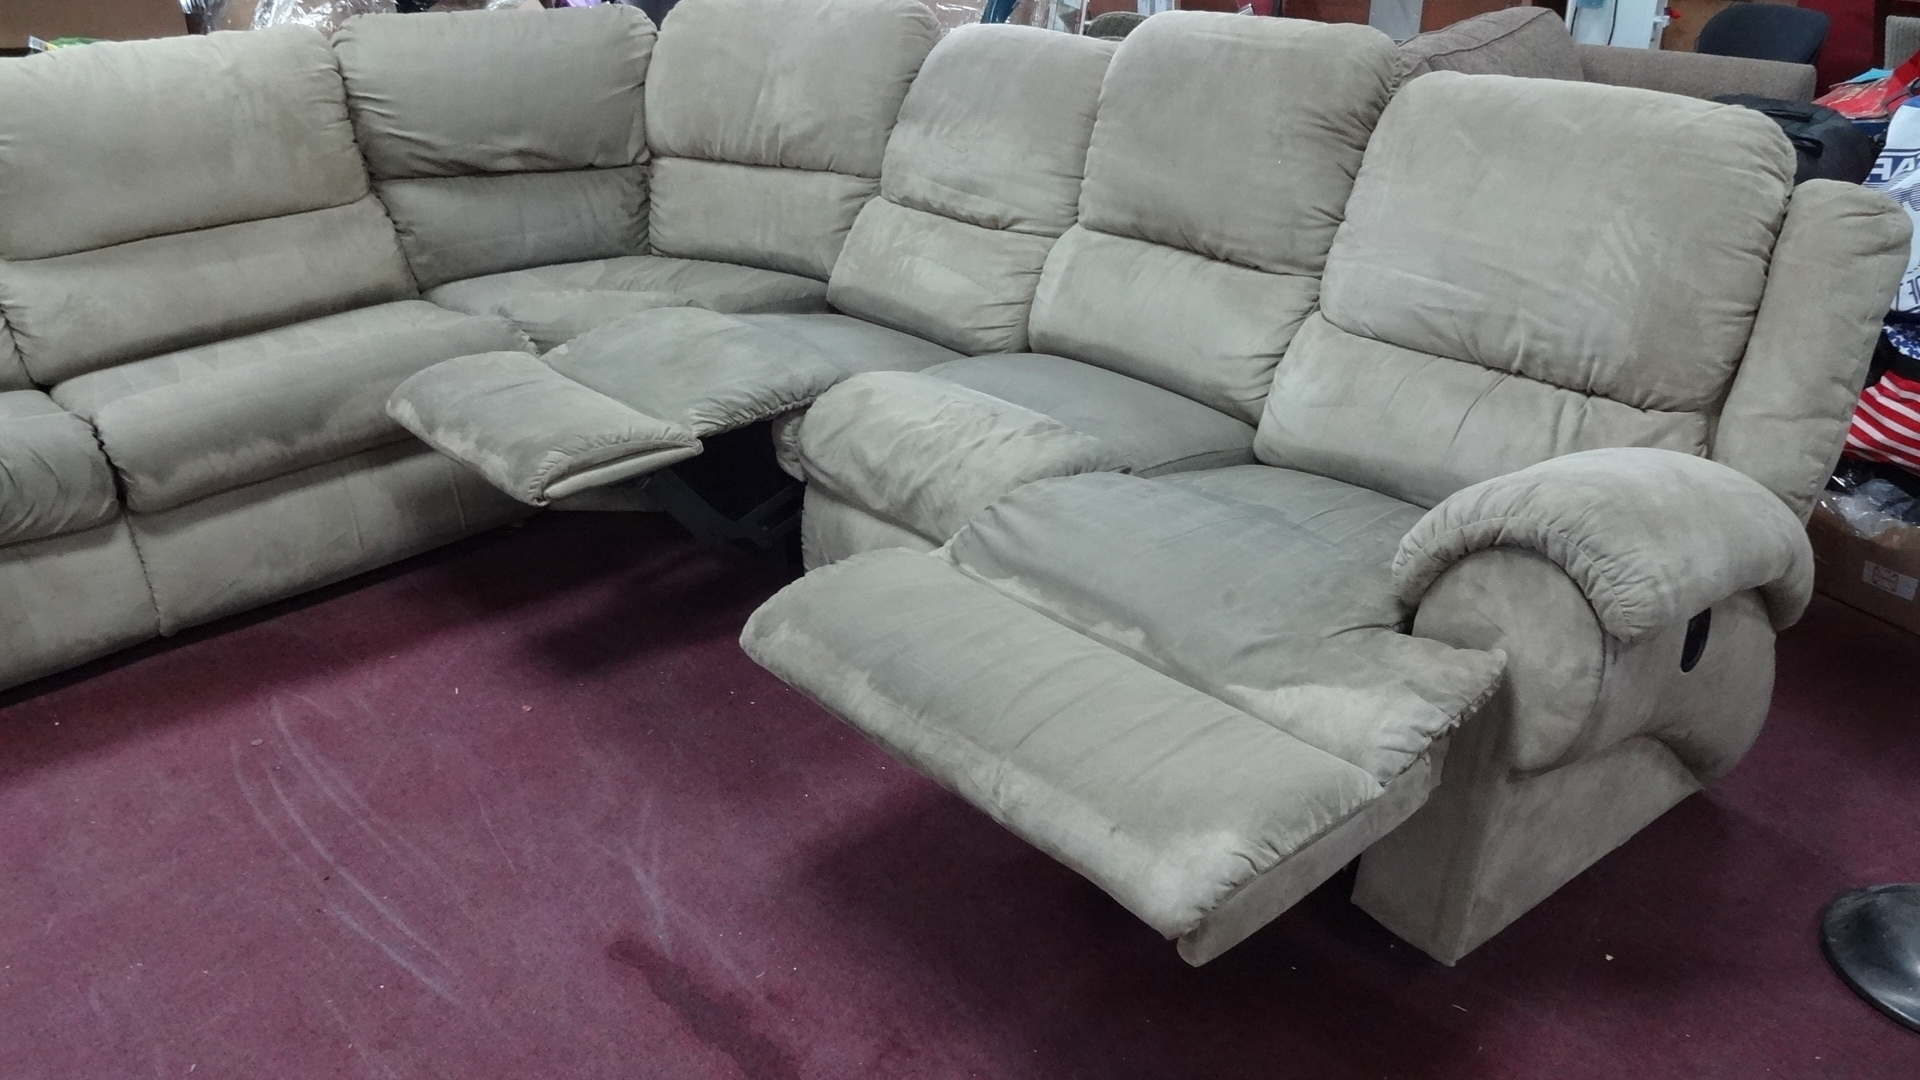 The Brick Sectional Sofas Inside Most Up To Date La Z Boy Sectional Sofa Bed • Sofa Bed (View 9 of 15)